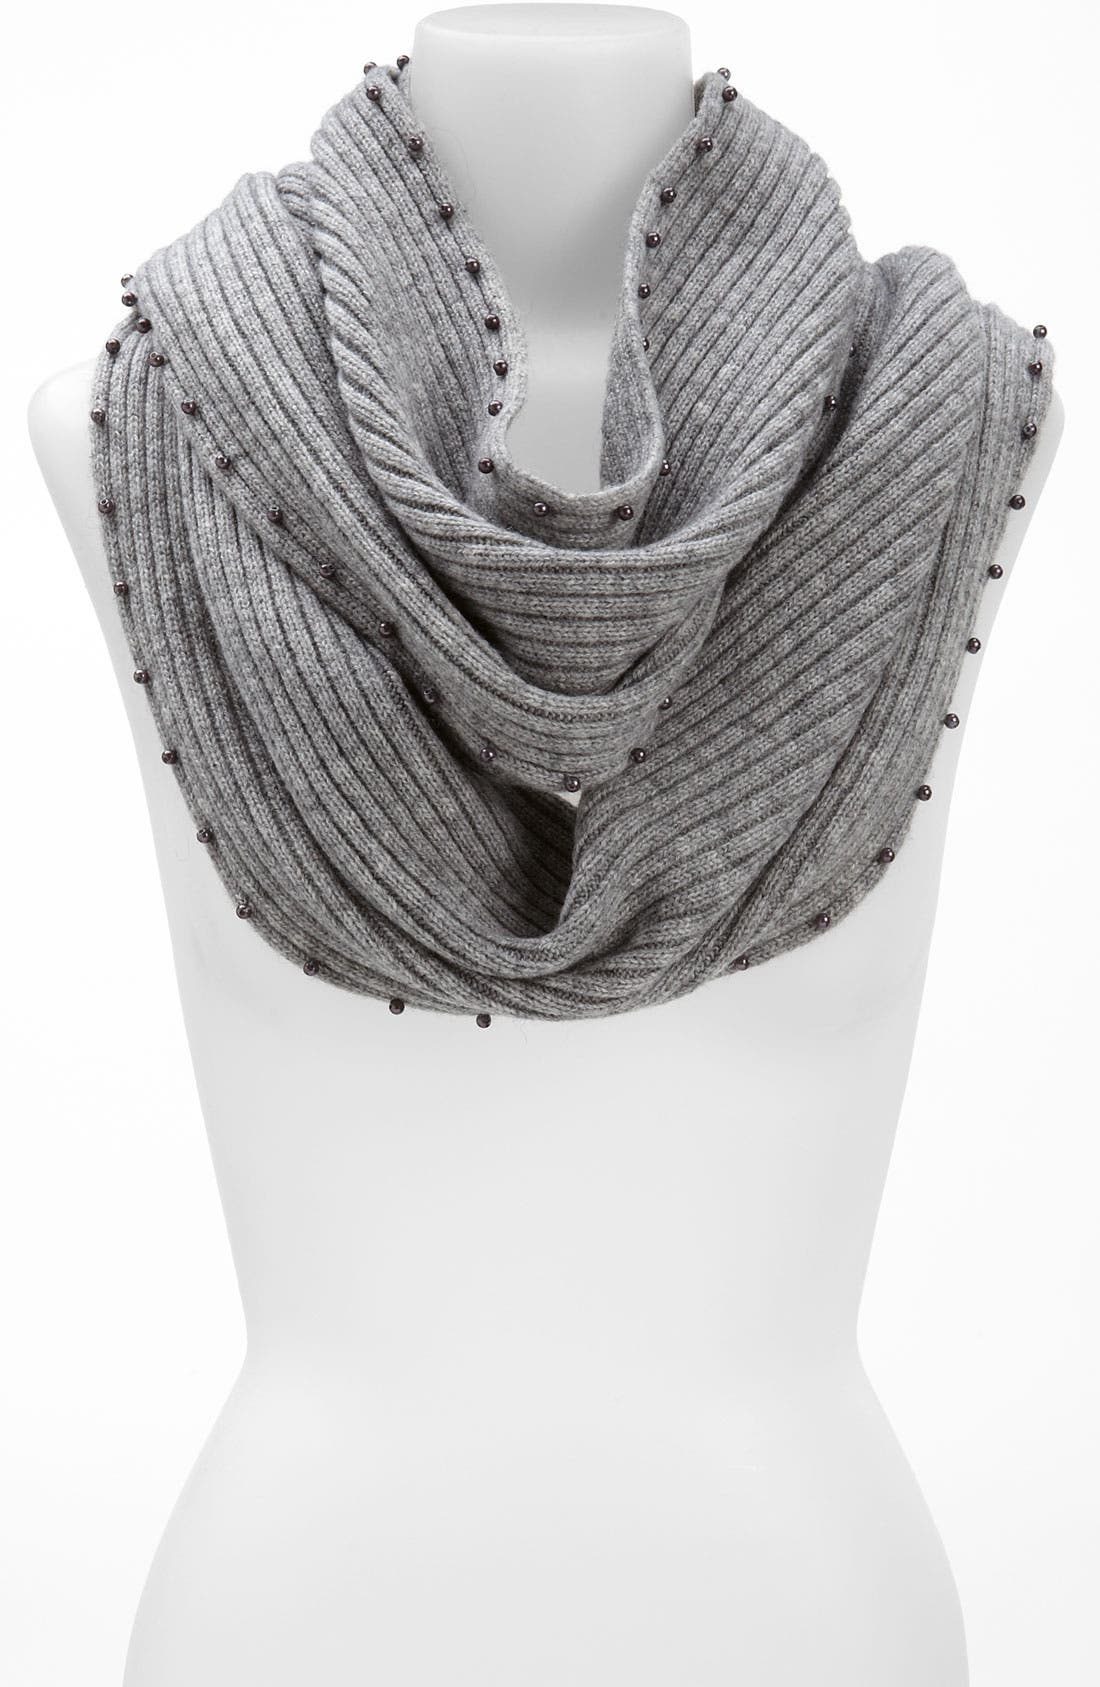 Alternate Image 1 Selected - Laundry by Shelli Segal Wool Infinity Scarf